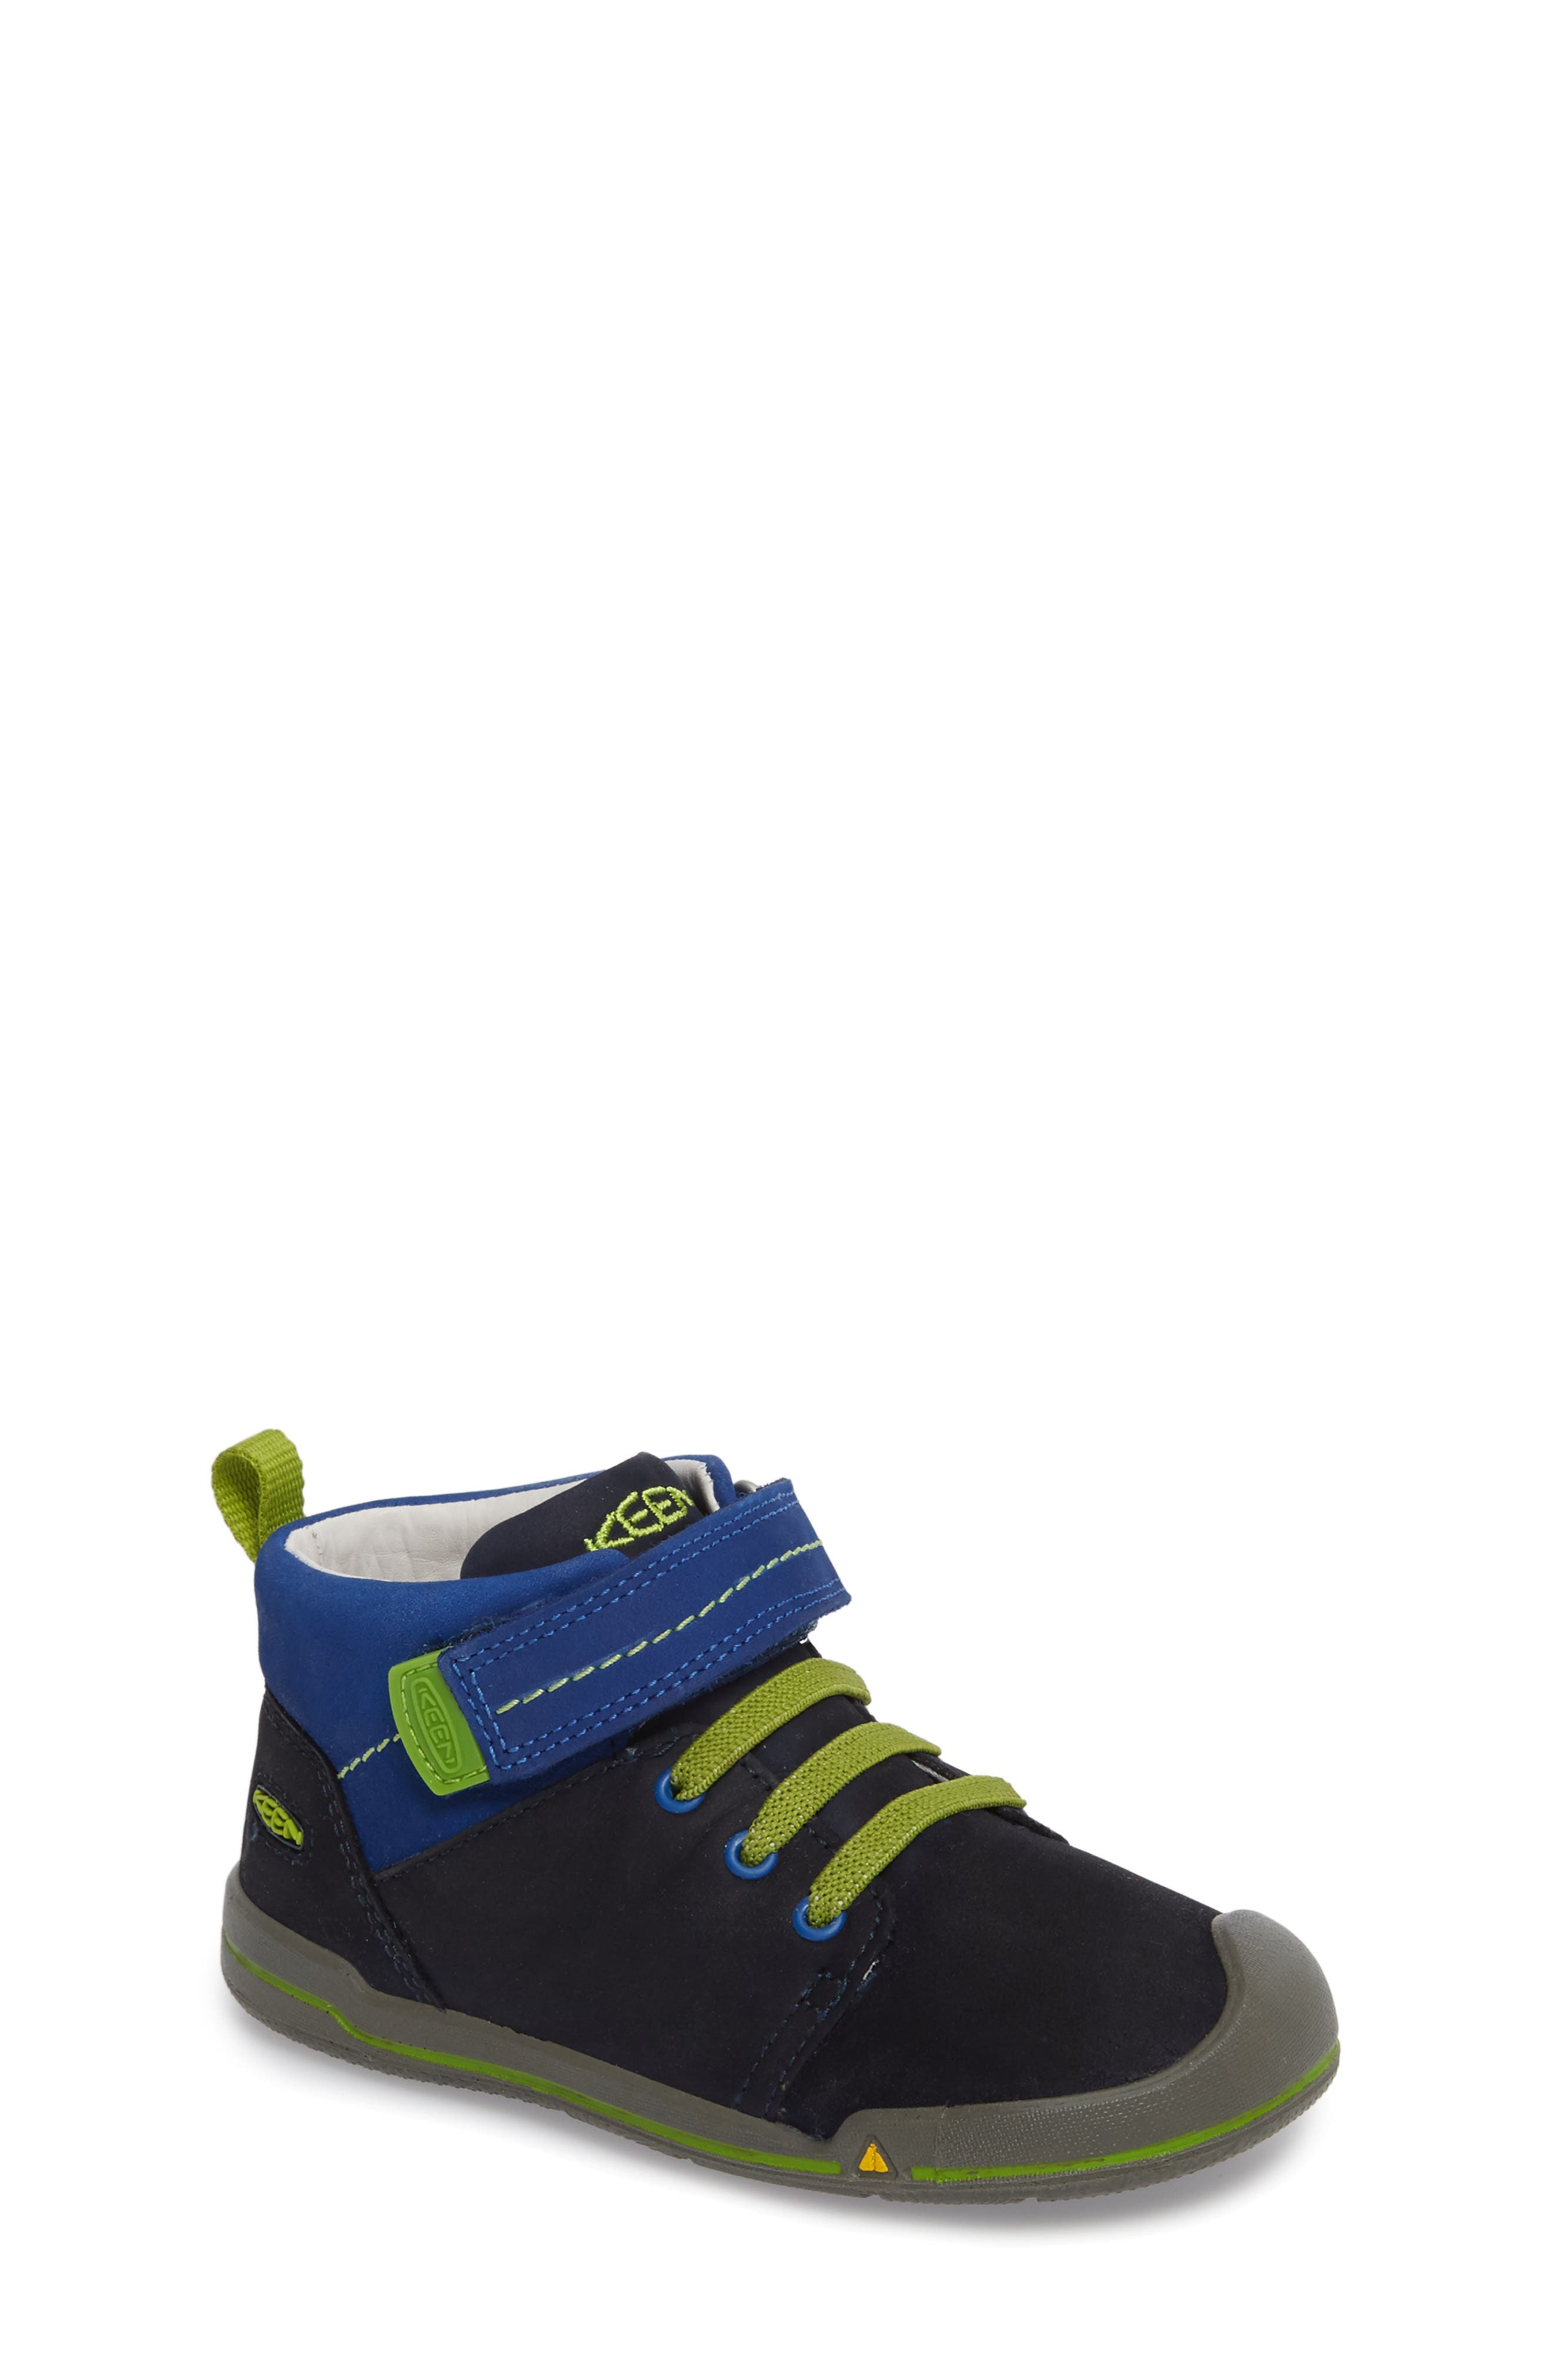 Sprout Mid Sneaker,                             Main thumbnail 1, color,                             400